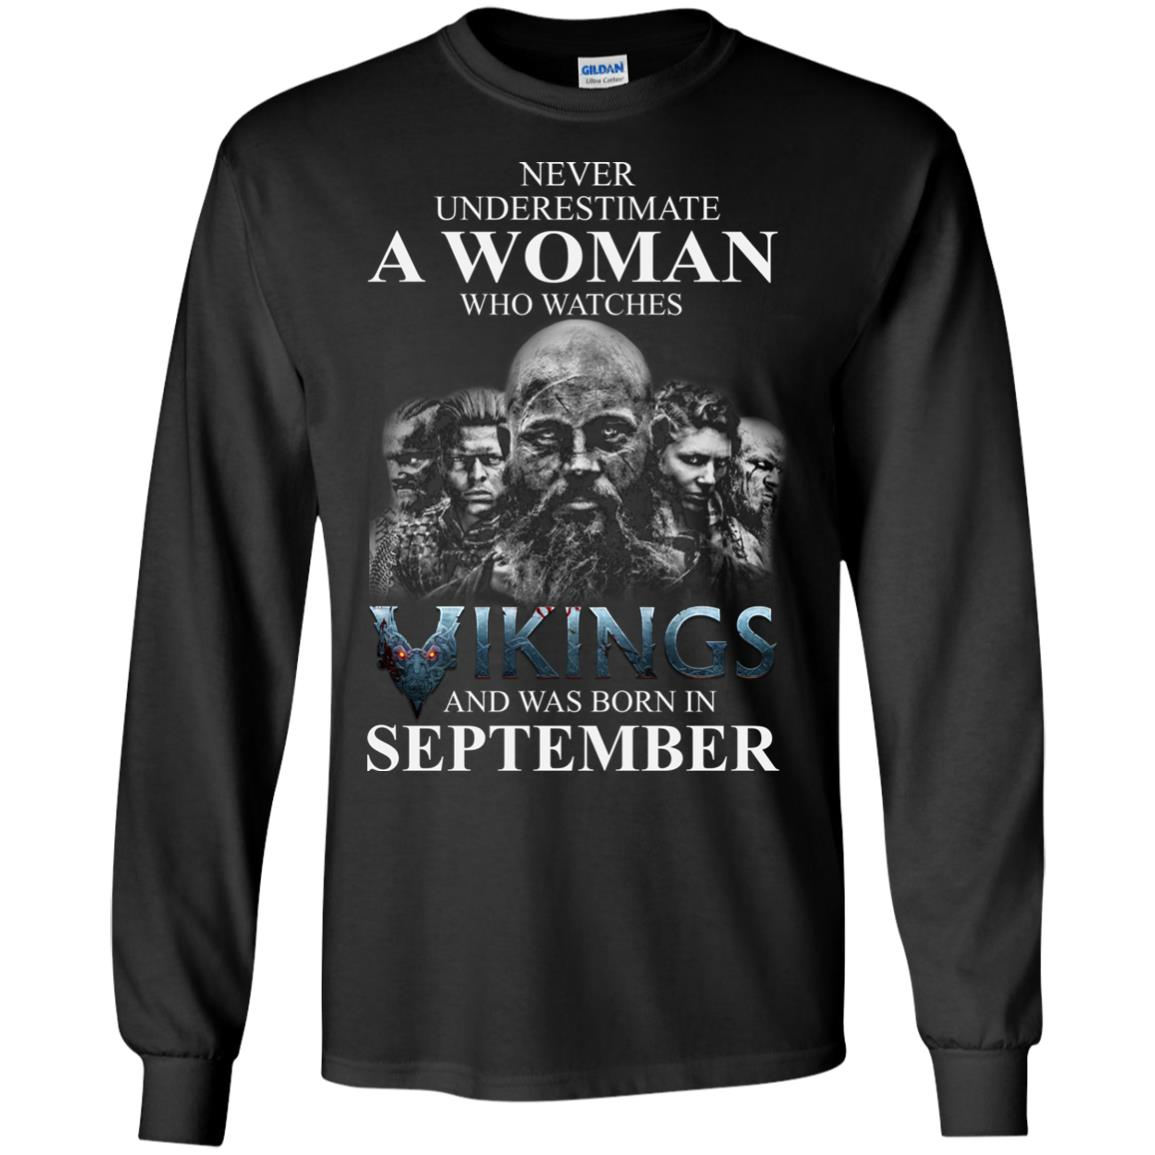 image 1257 - Never Underestimate A woman who watches Vikings and was born in September shirt